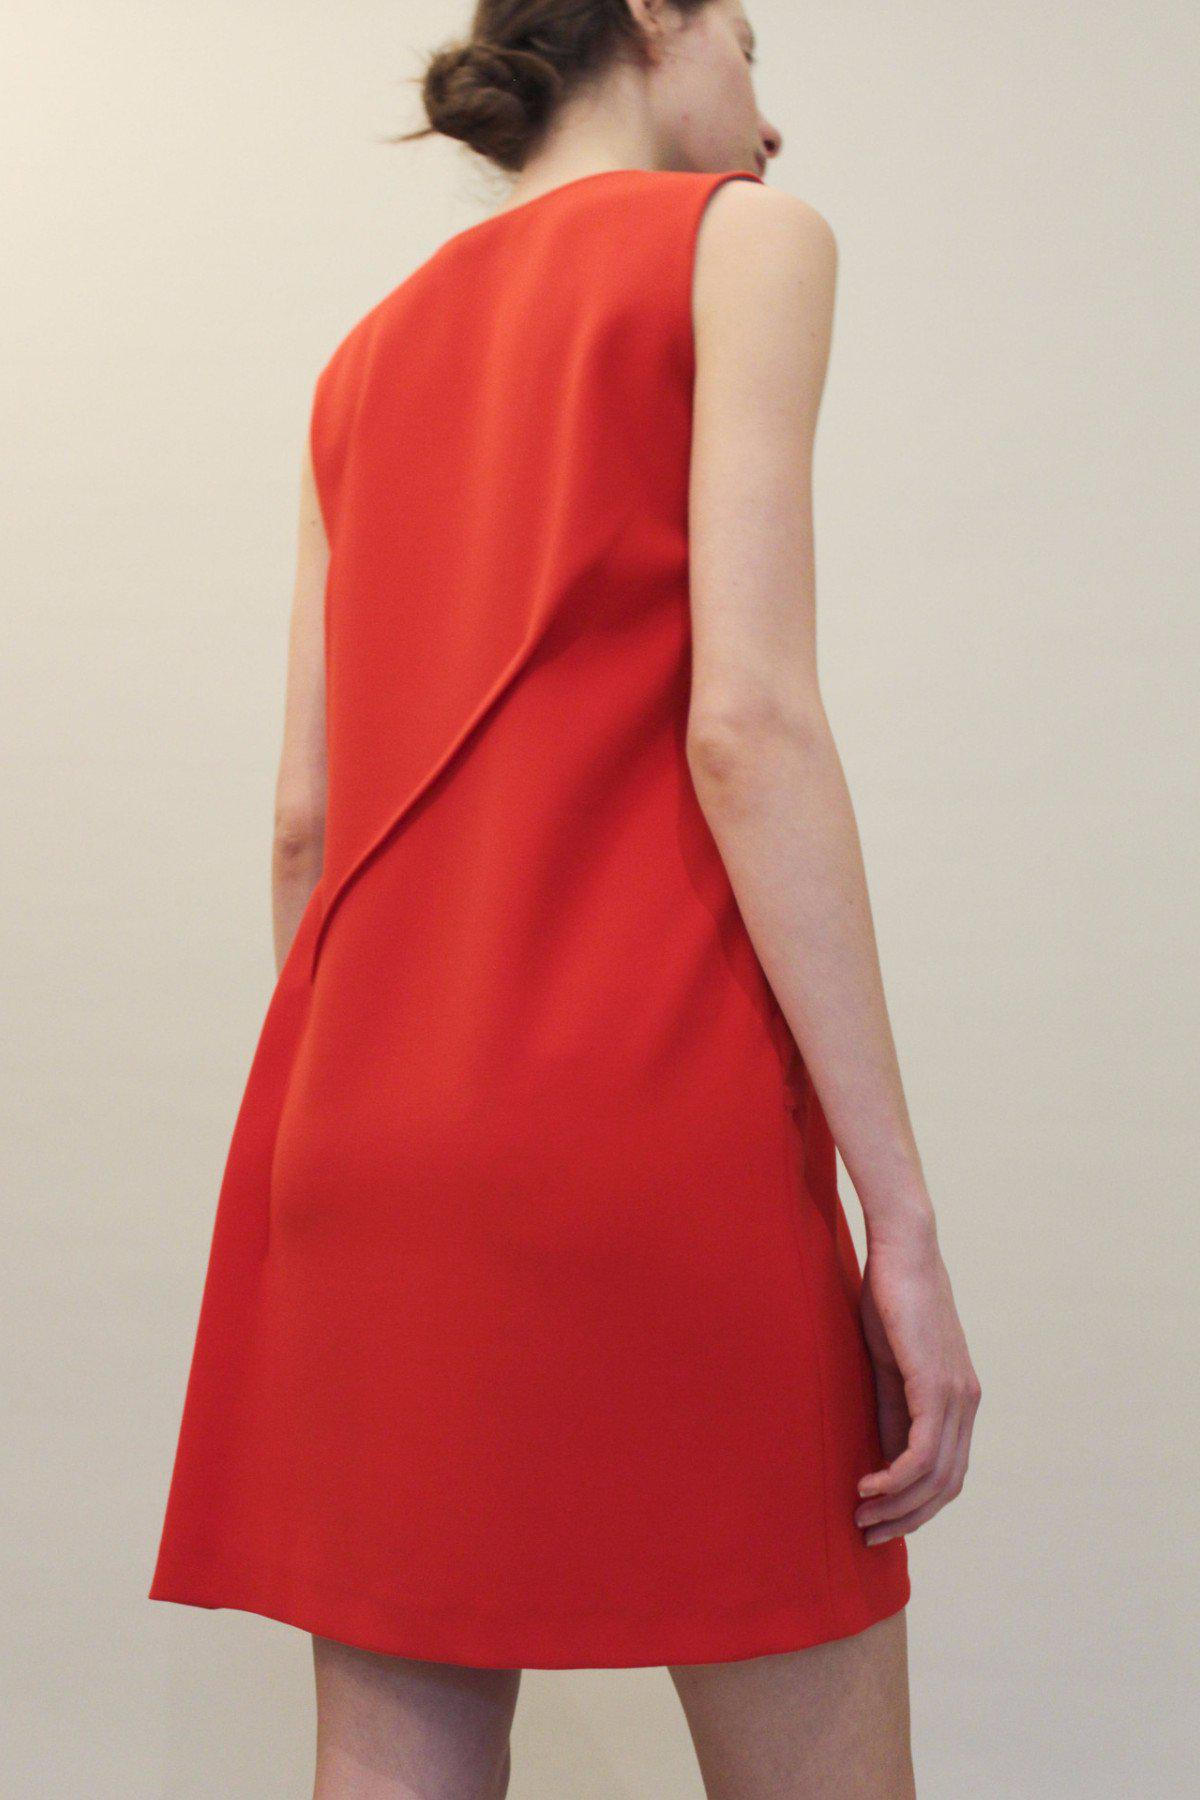 Mattie Inside Out Dress Red - SPECIAL PRICE